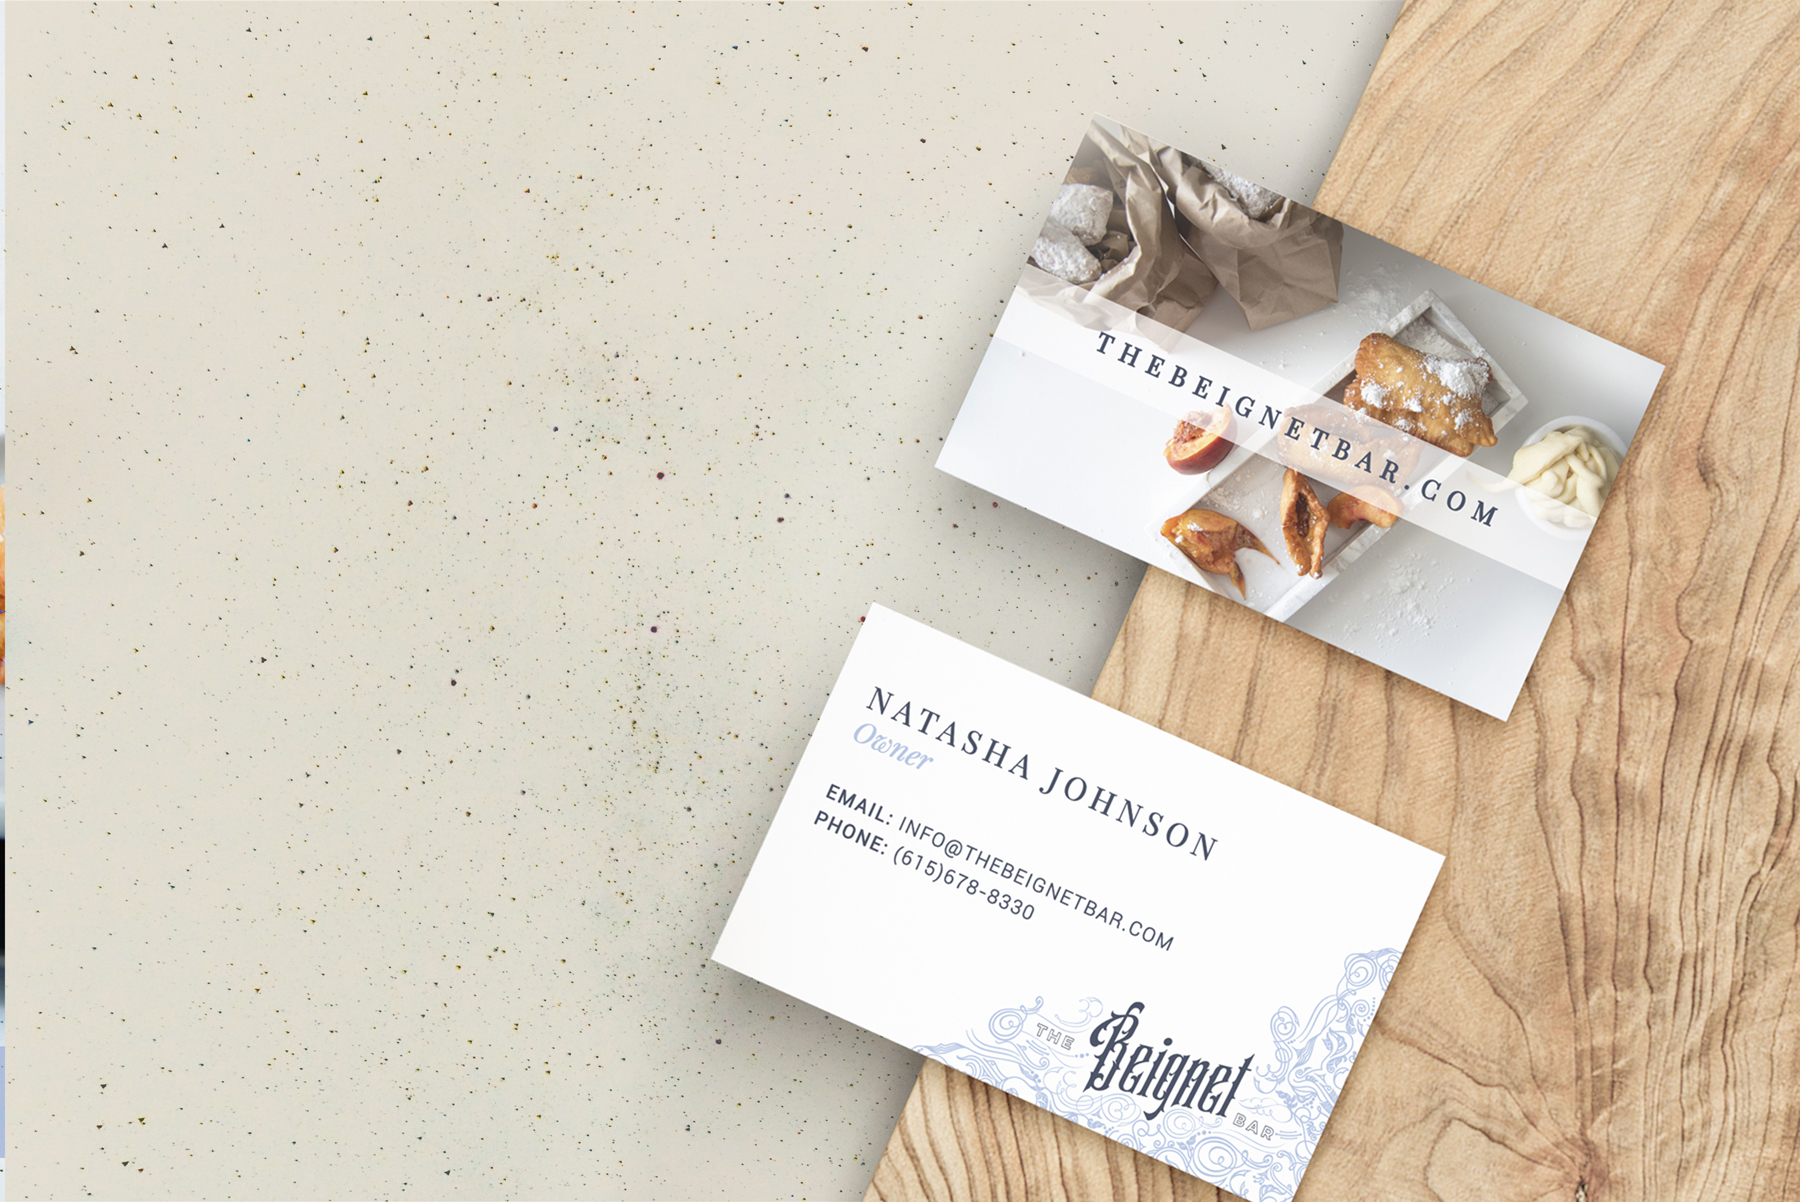 The Beignet Bar Business Card designed by Hire Henri Creative in Chicago Illinois